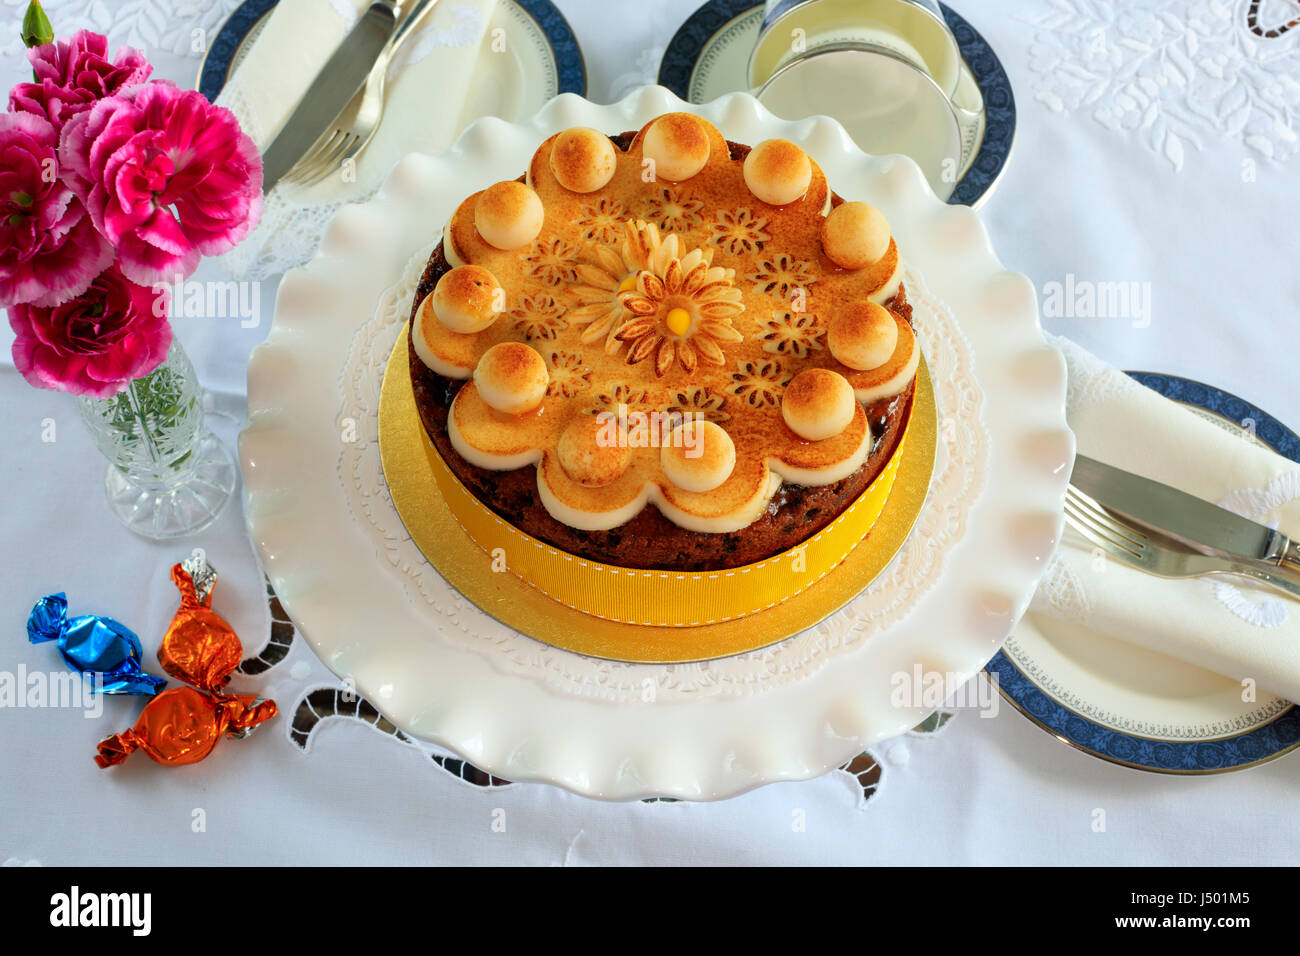 Simnel cake - traditional Easter fruit cake decorated with marzipan on a table set for tea. - Stock Image